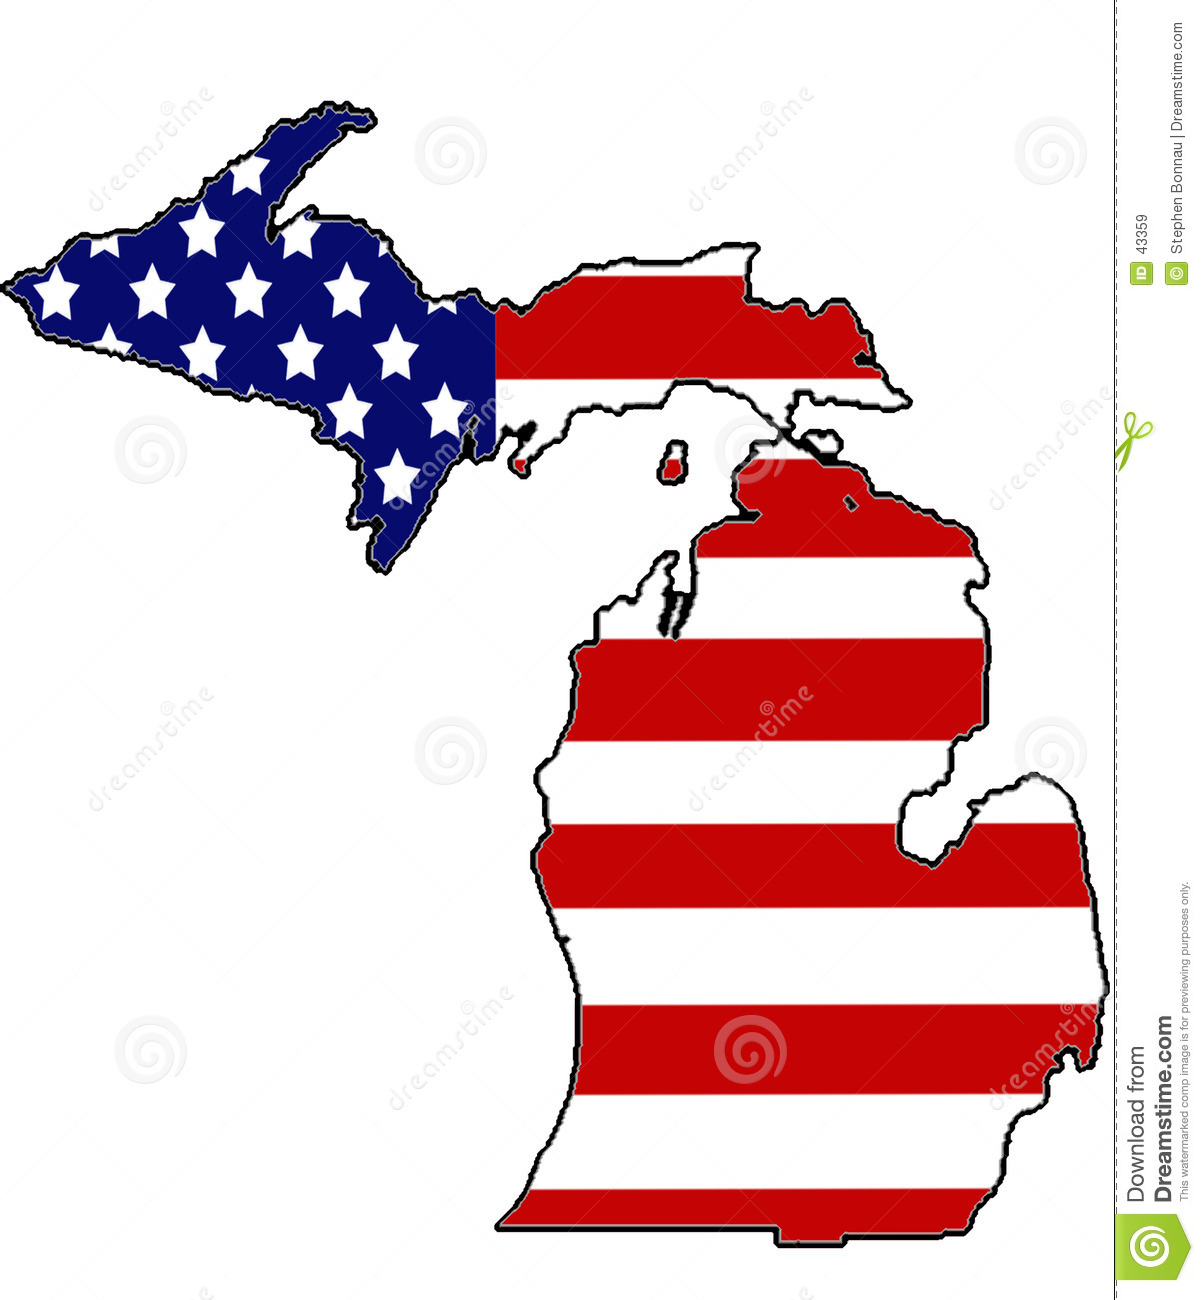 Download Patriottisch Michigan stock illustratie. Illustratie bestaande uit michigan - 43359